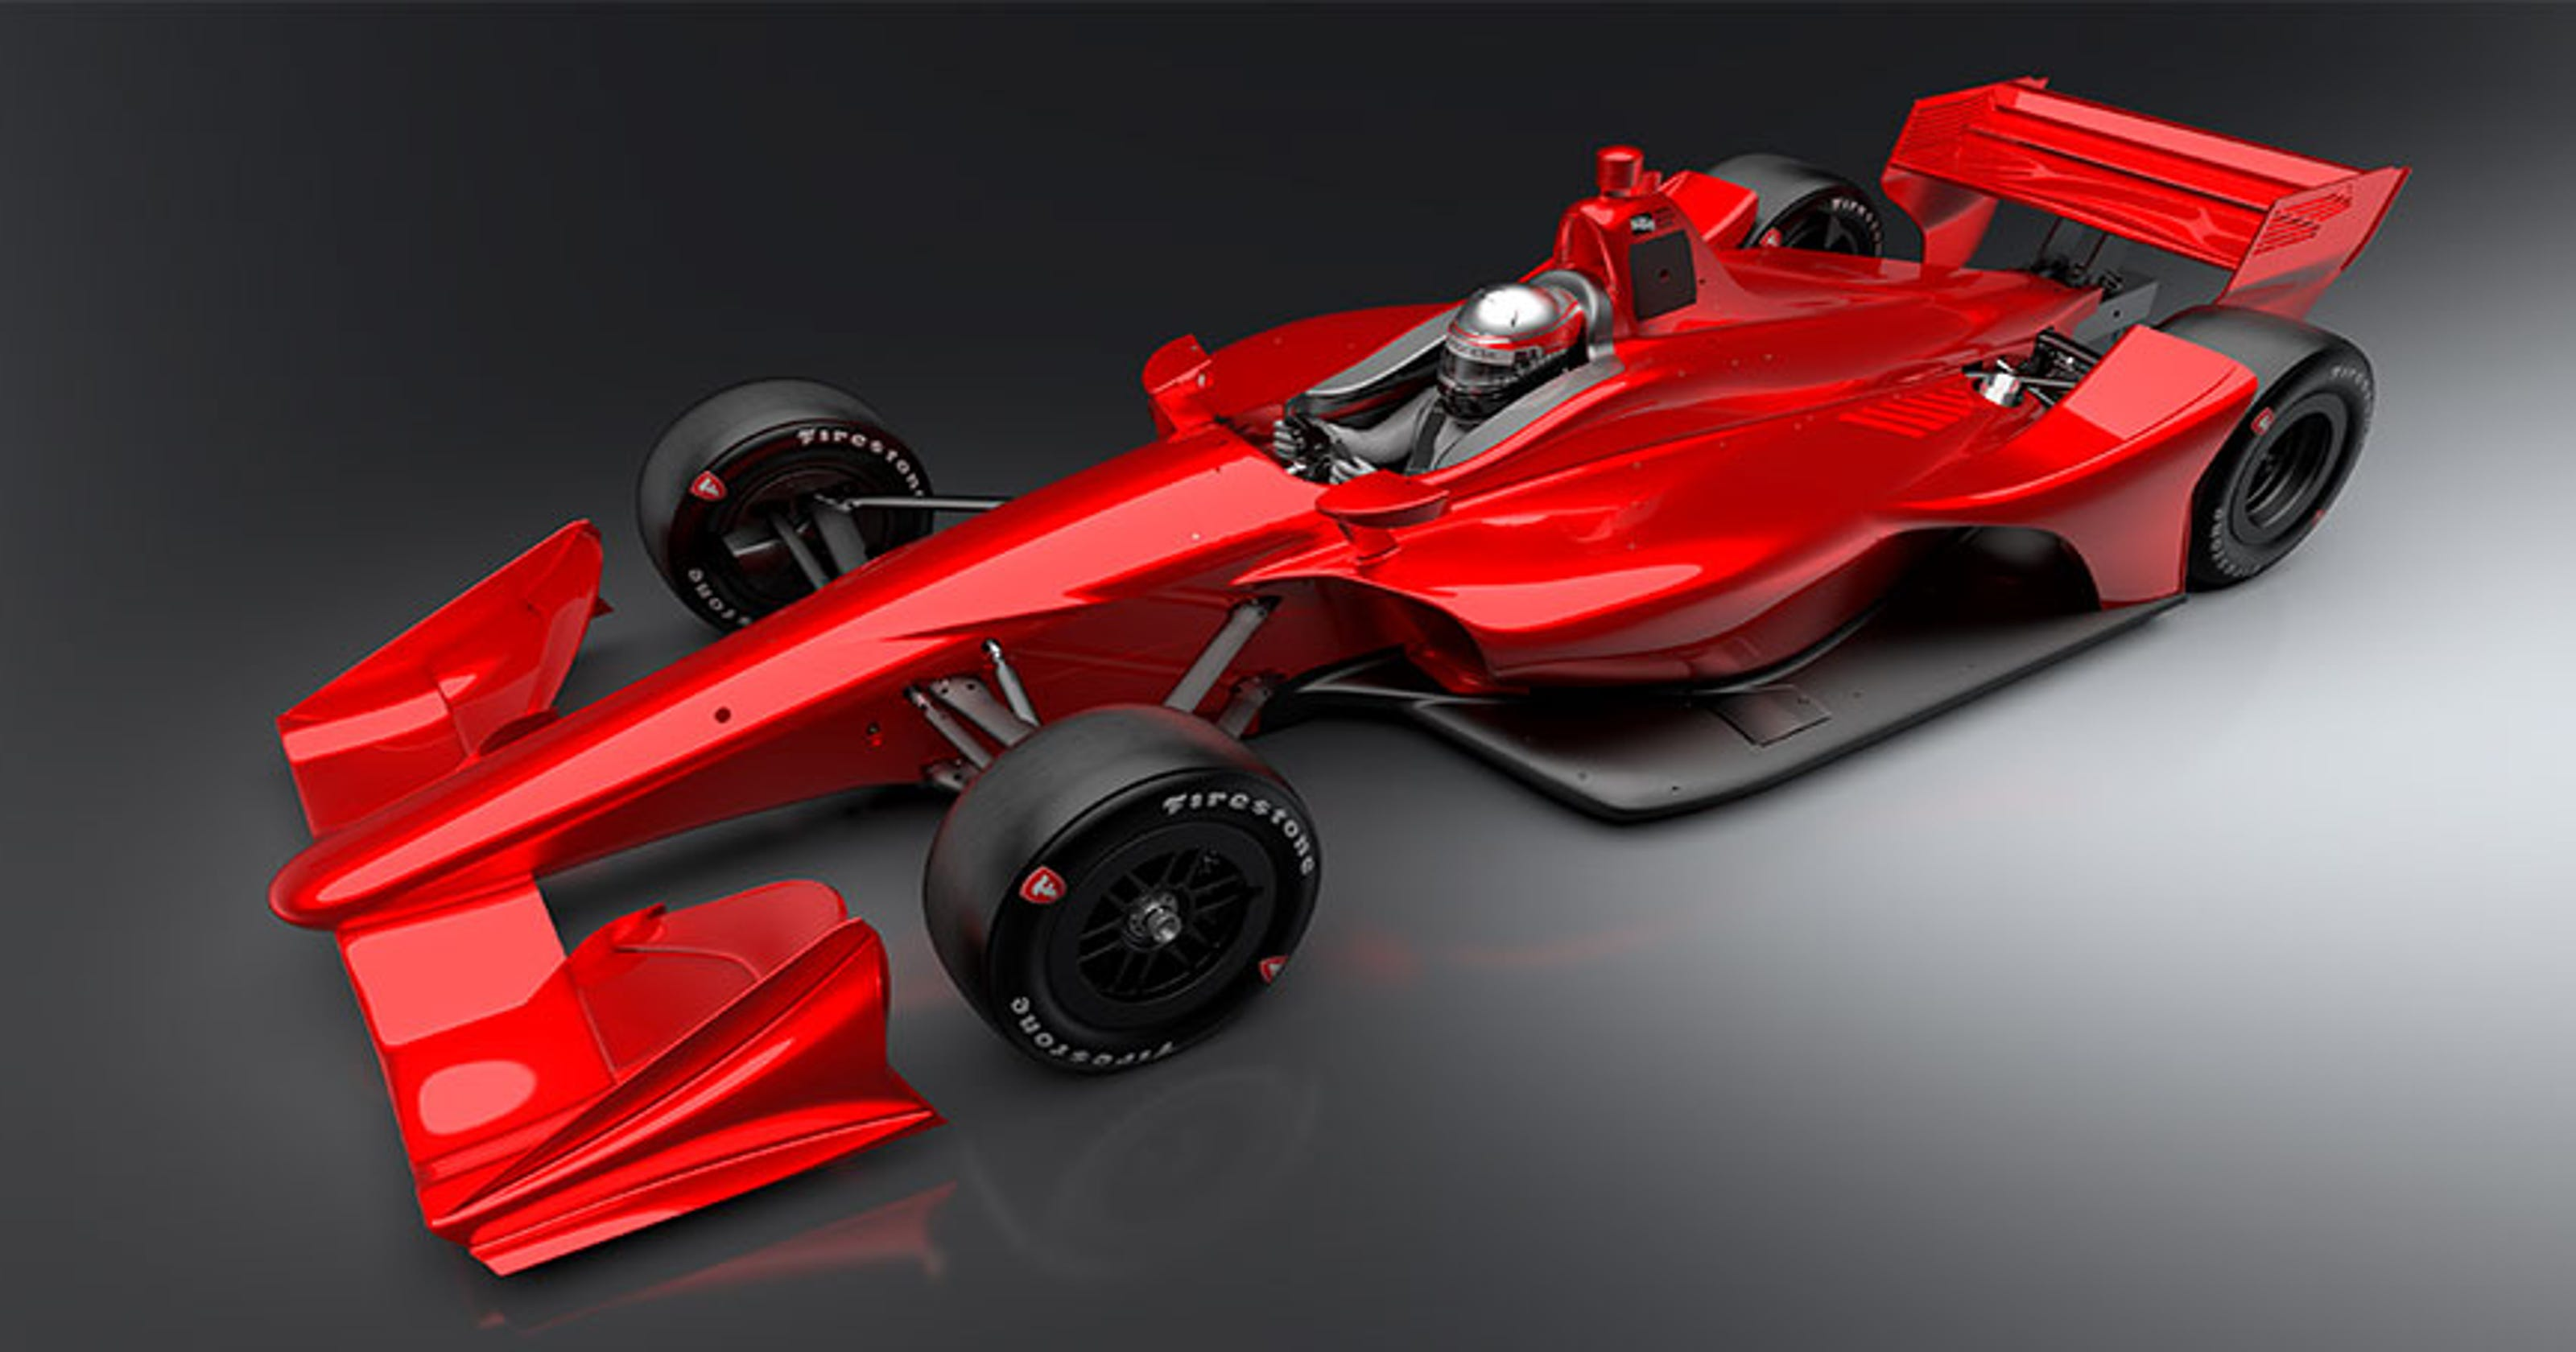 IndyCar releases latest tease of 2018 car